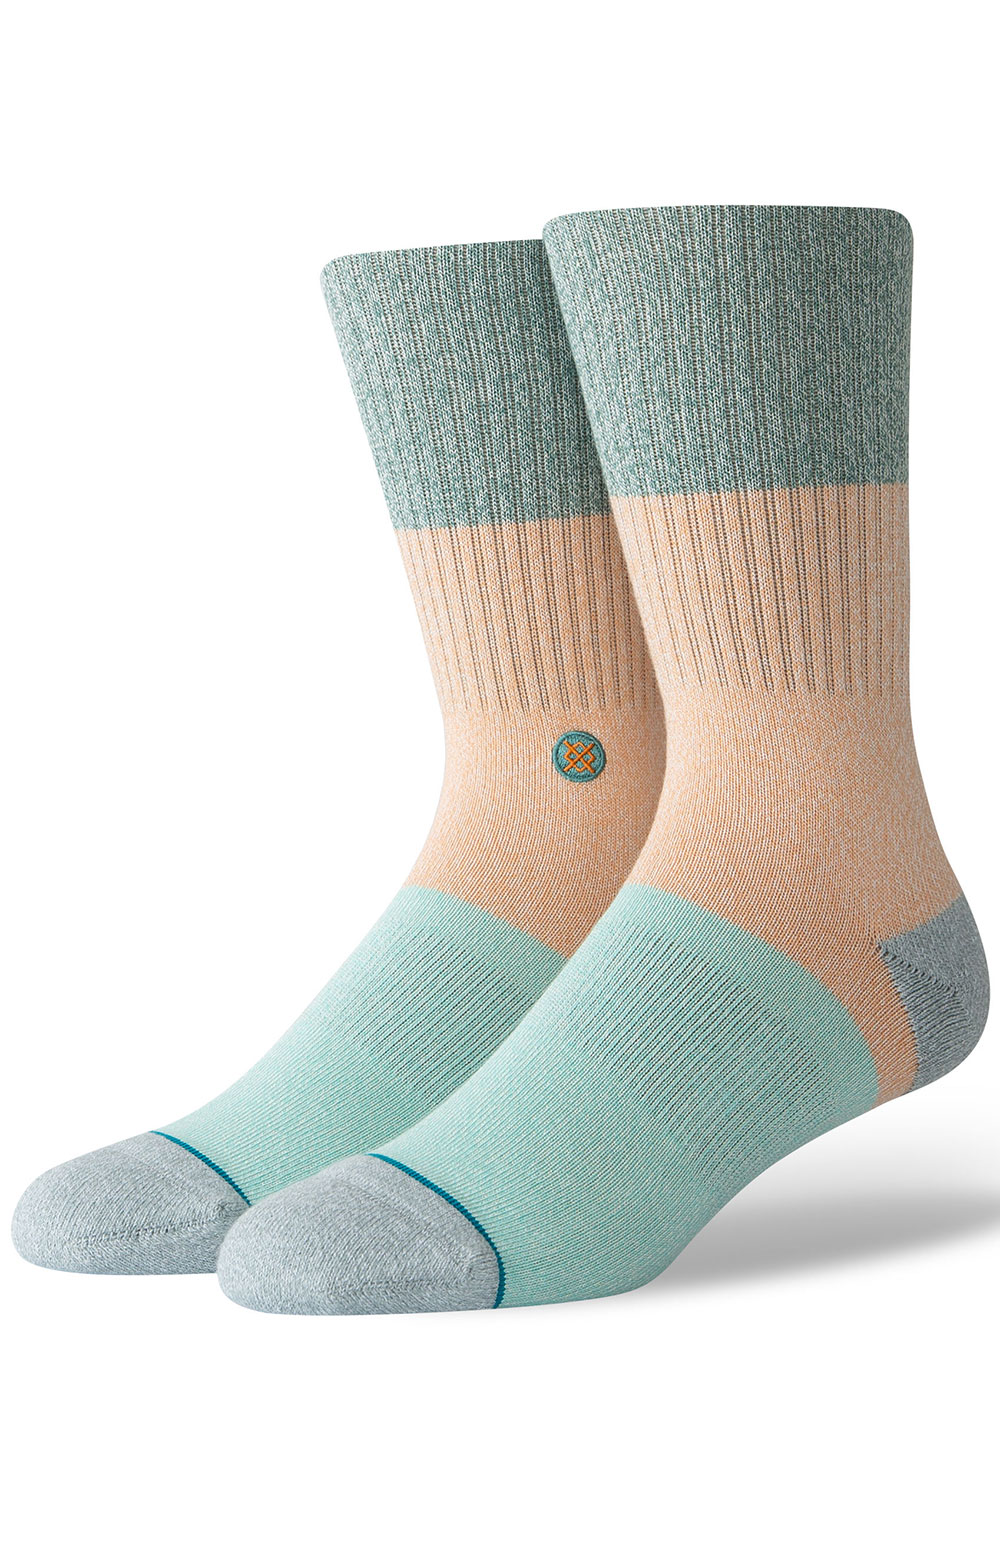 Neapolitan Socks - Melon